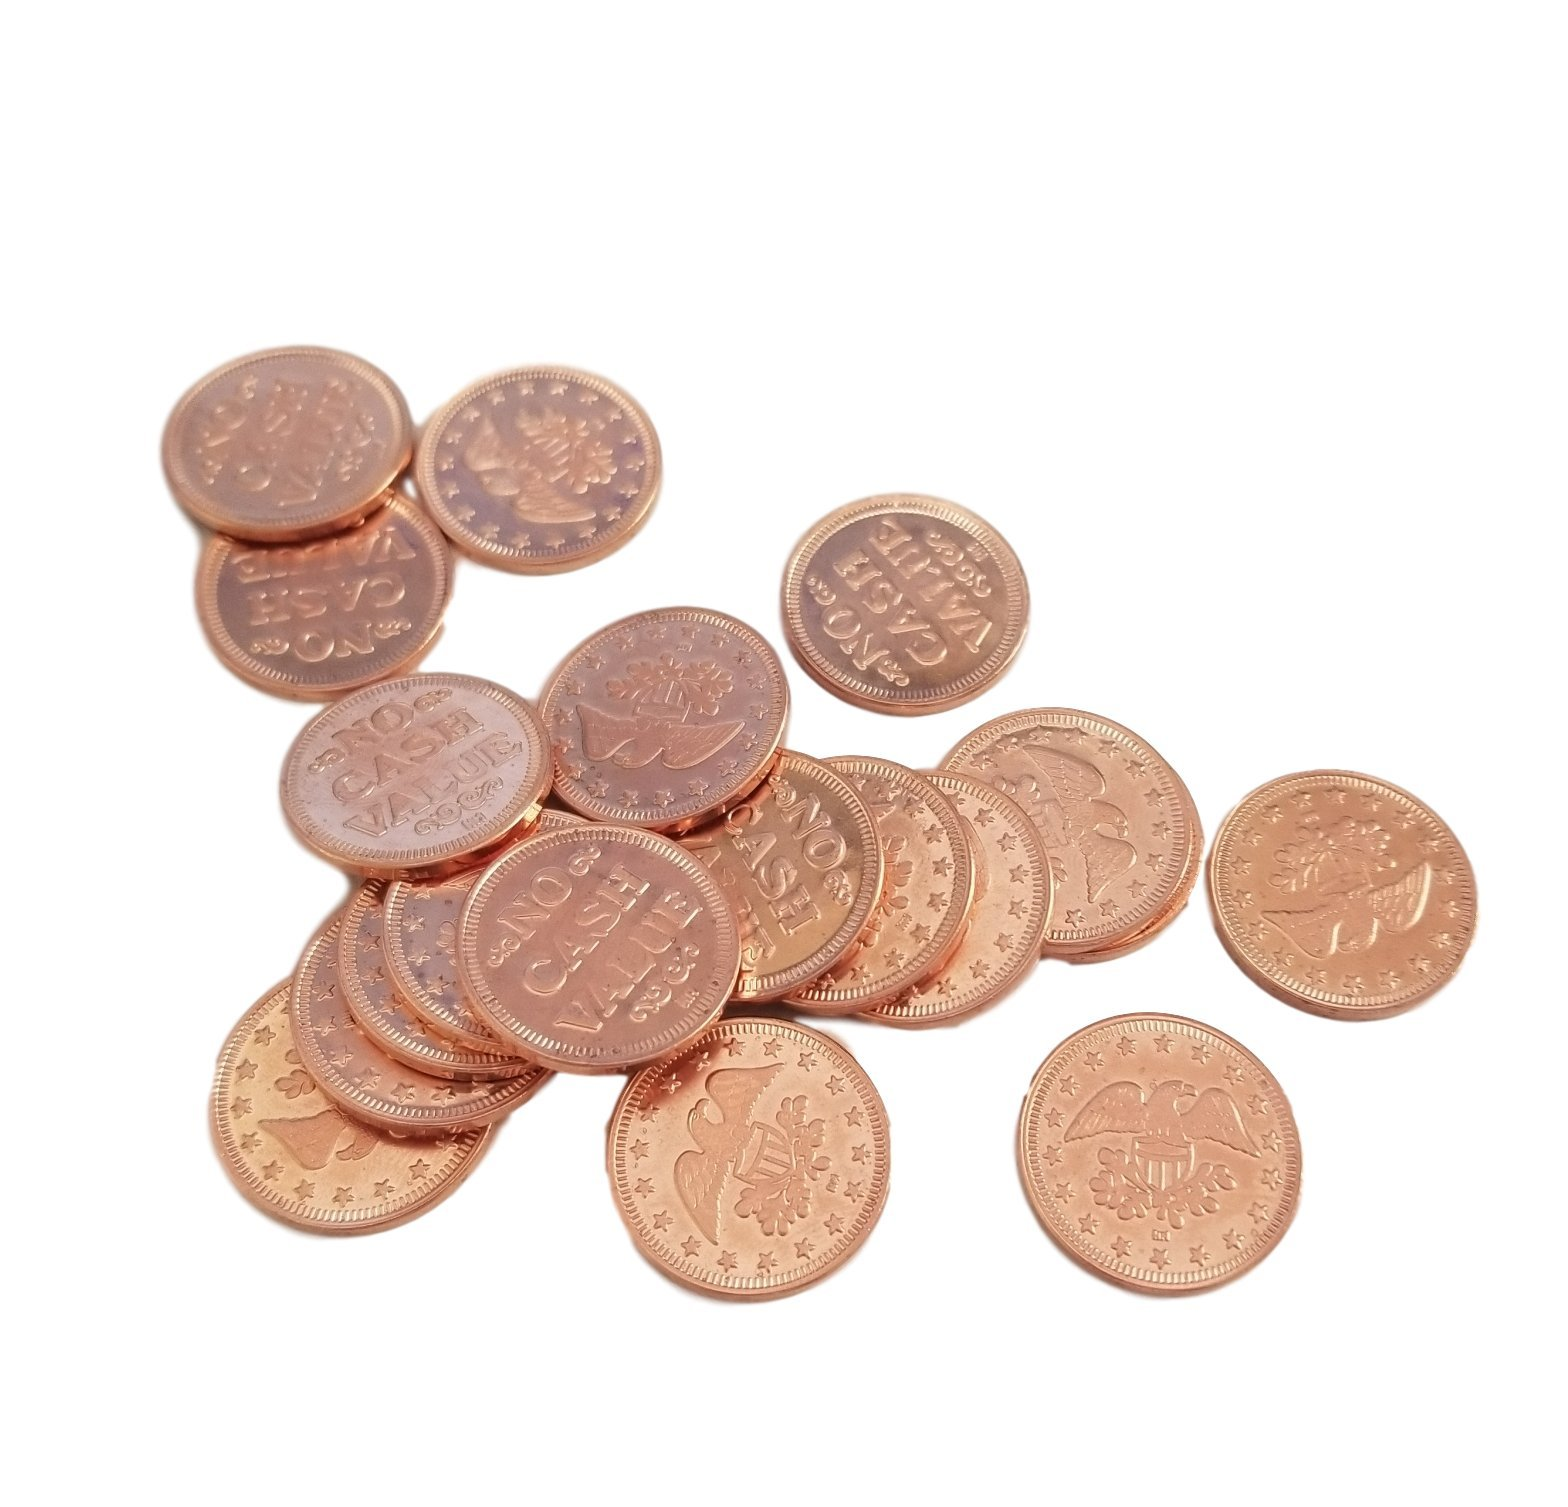 0.900'' in Diameter Eagle Design Arcade/Prize Metal Copper Color Tokens by MT Products - (Pack of 50 Tokens) (Please determine if correct size for your machine before ordering.)